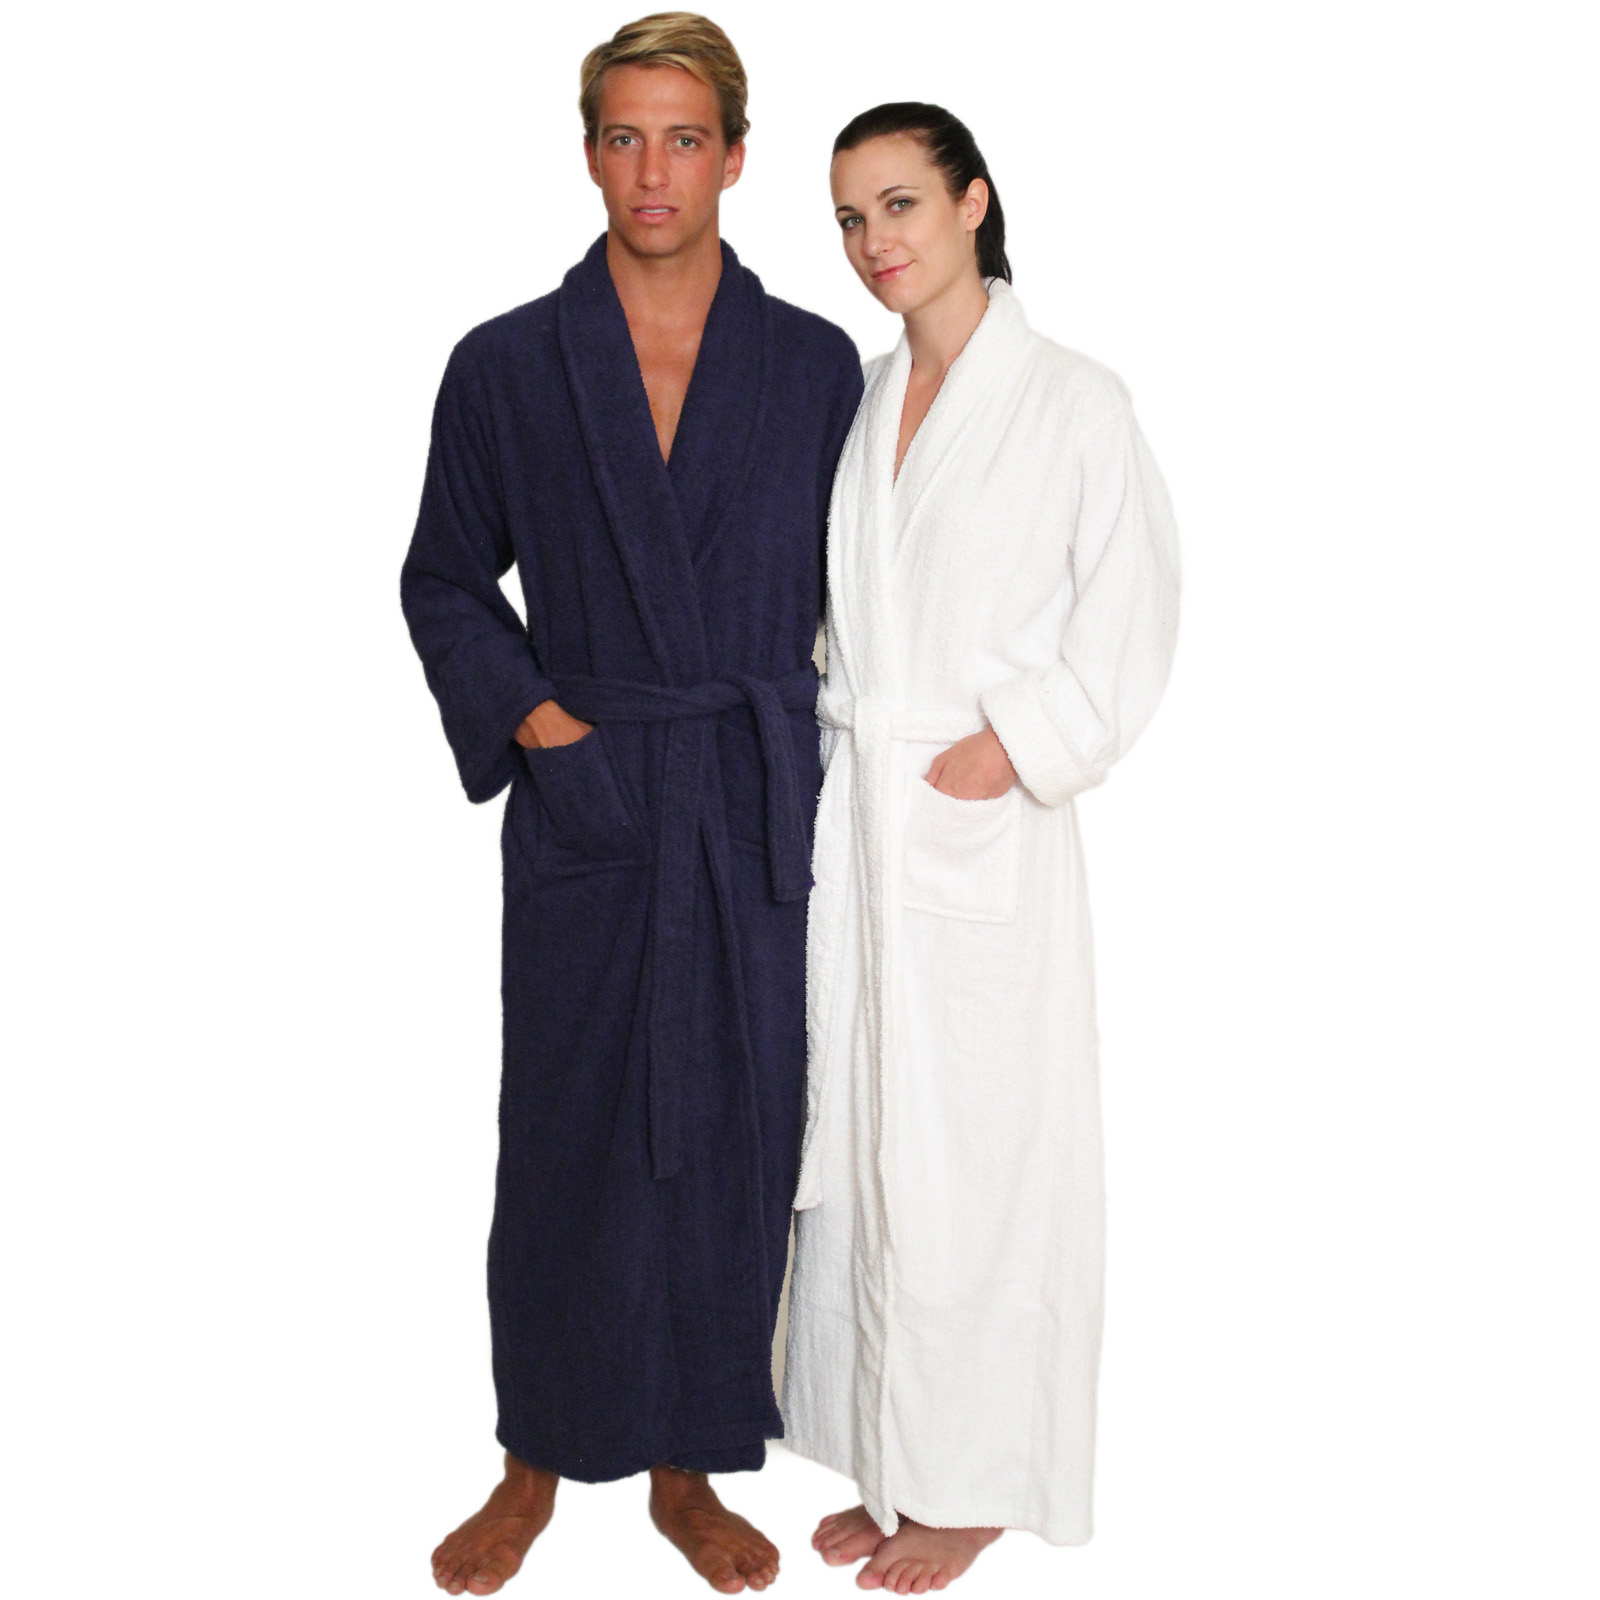 9185913526 Full Length Terry Cloth Robe Long Sleeves 100% cotton  49.99 Colors  Mint-2X